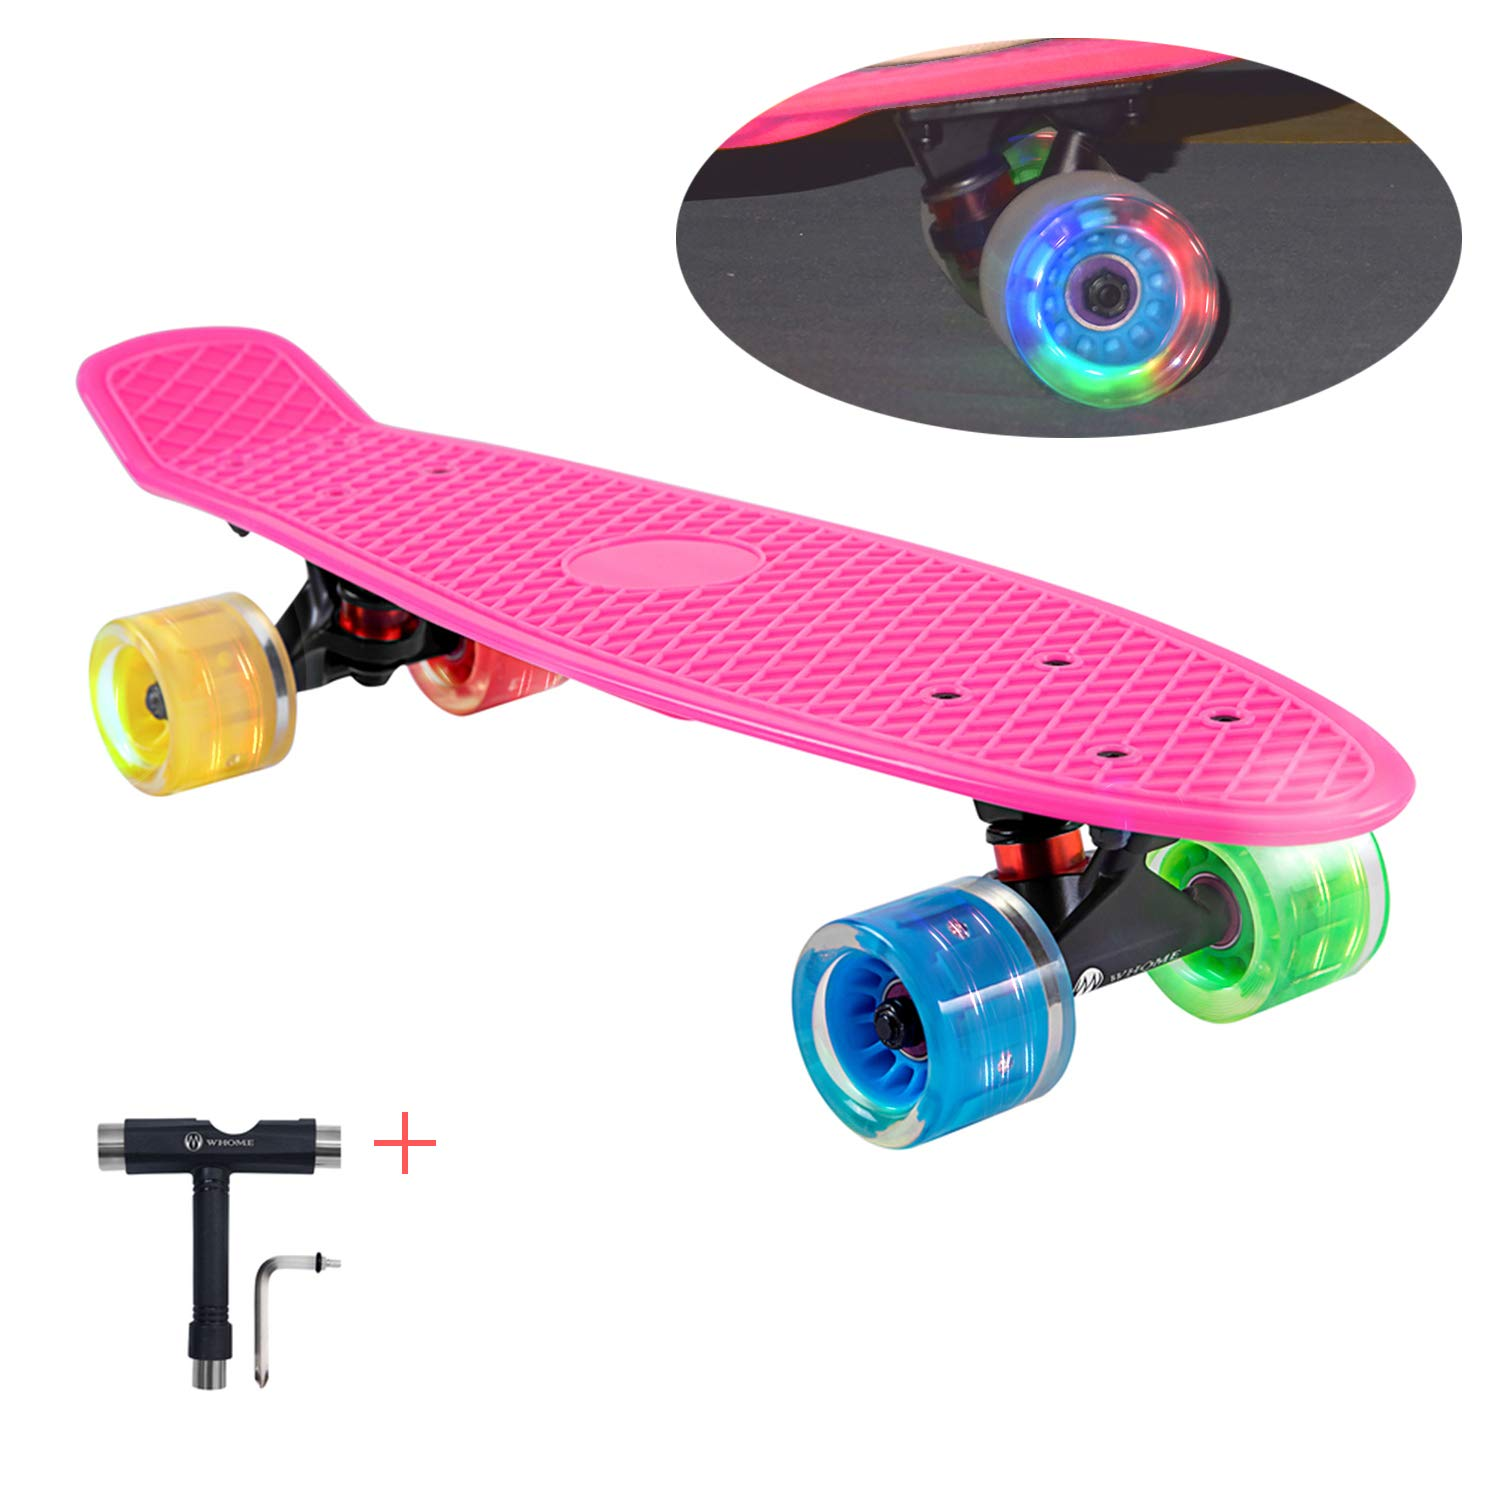 WHOME LED Wheel Skateboard Complete for Adults and Beginners - 22 Inch Cruiser Skateboard with 60x45mm LED Light Up Wheels for Cruising Commuting Rolling Around T-Tool Inclued